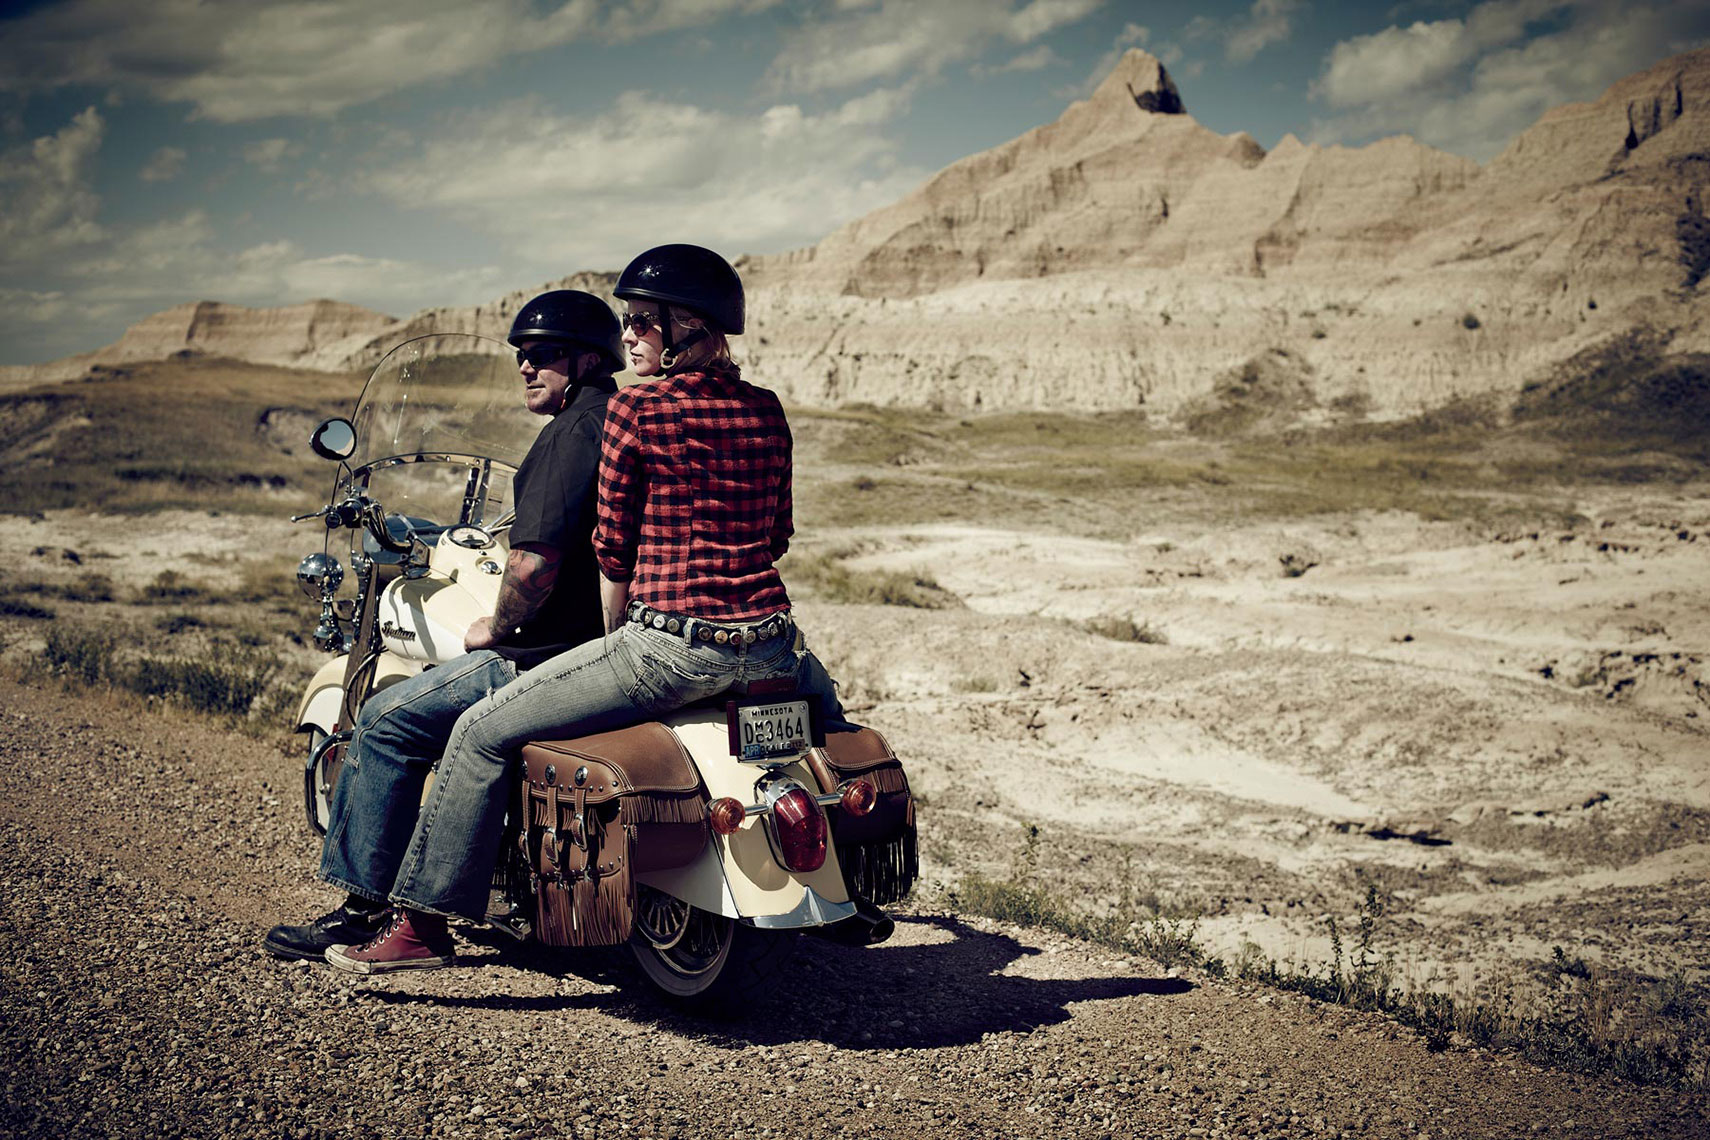 Biking in the Badlands